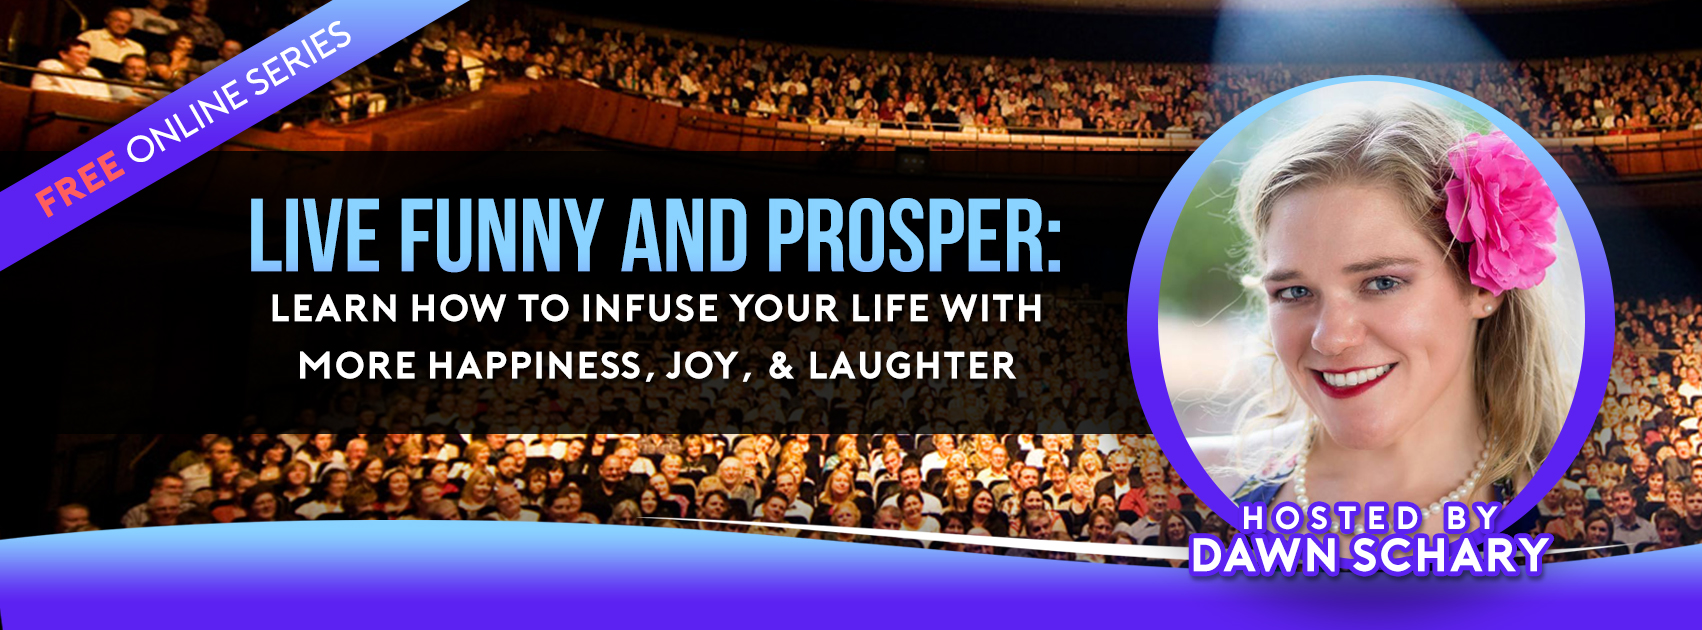 Live Funny and Prosper Banner